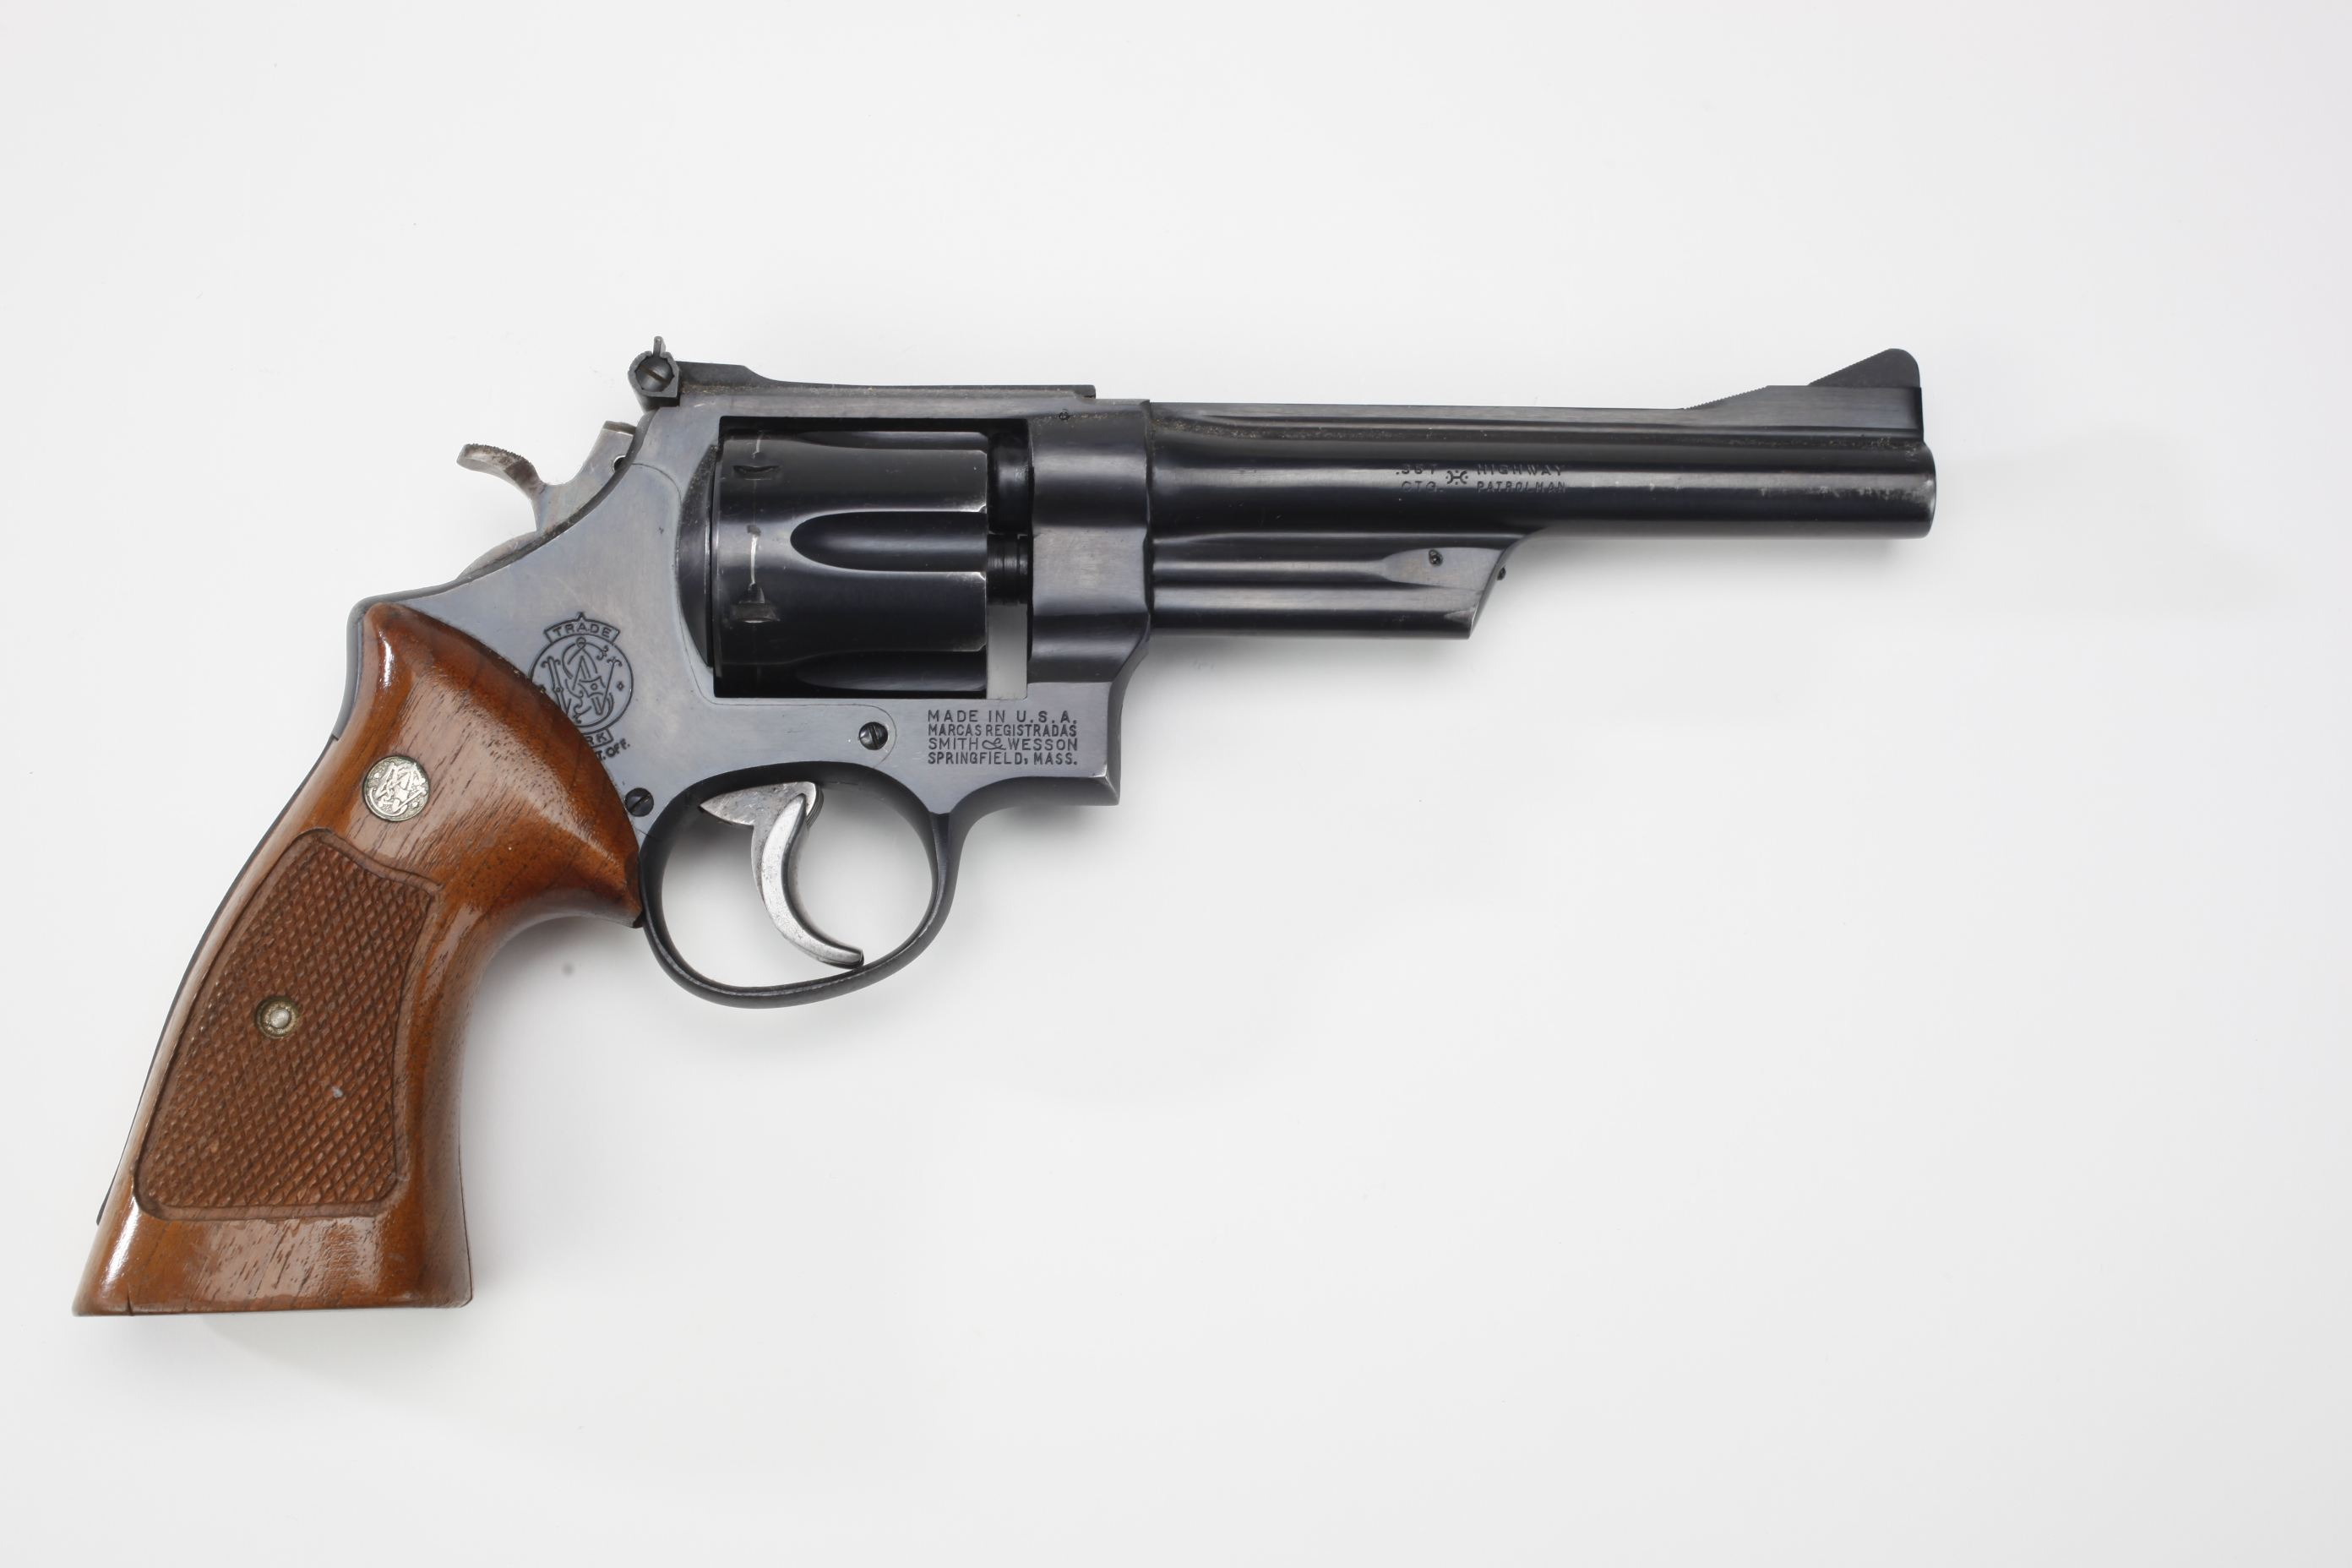 Smith & Wesson Model 28 Revolver